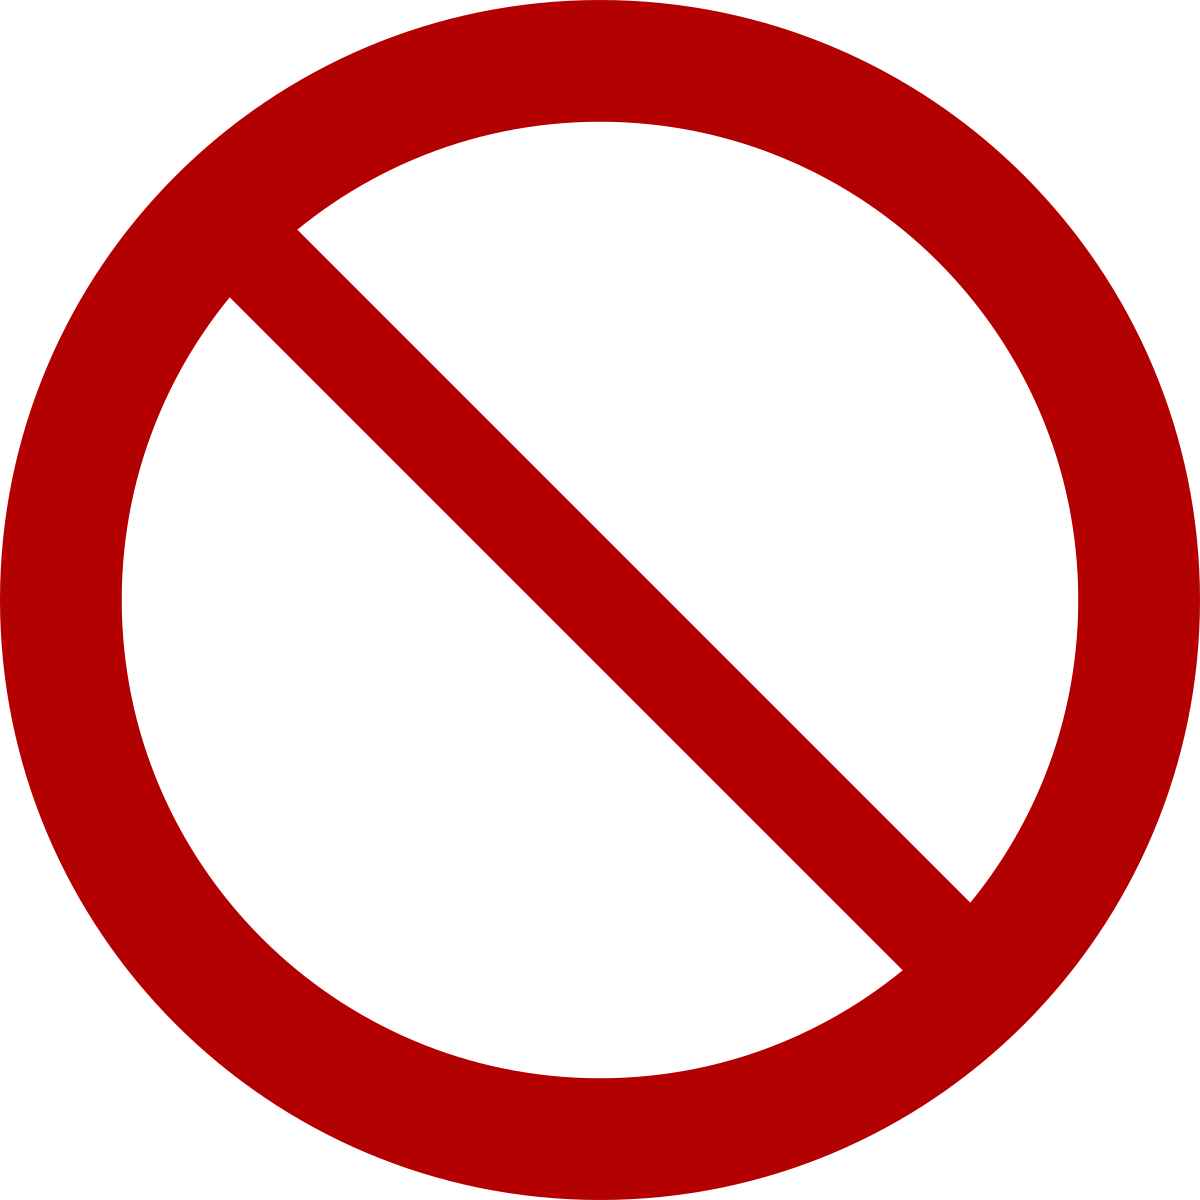 Free clipart 21 and under not allowed sign svg No symbol - Wikipedia svg